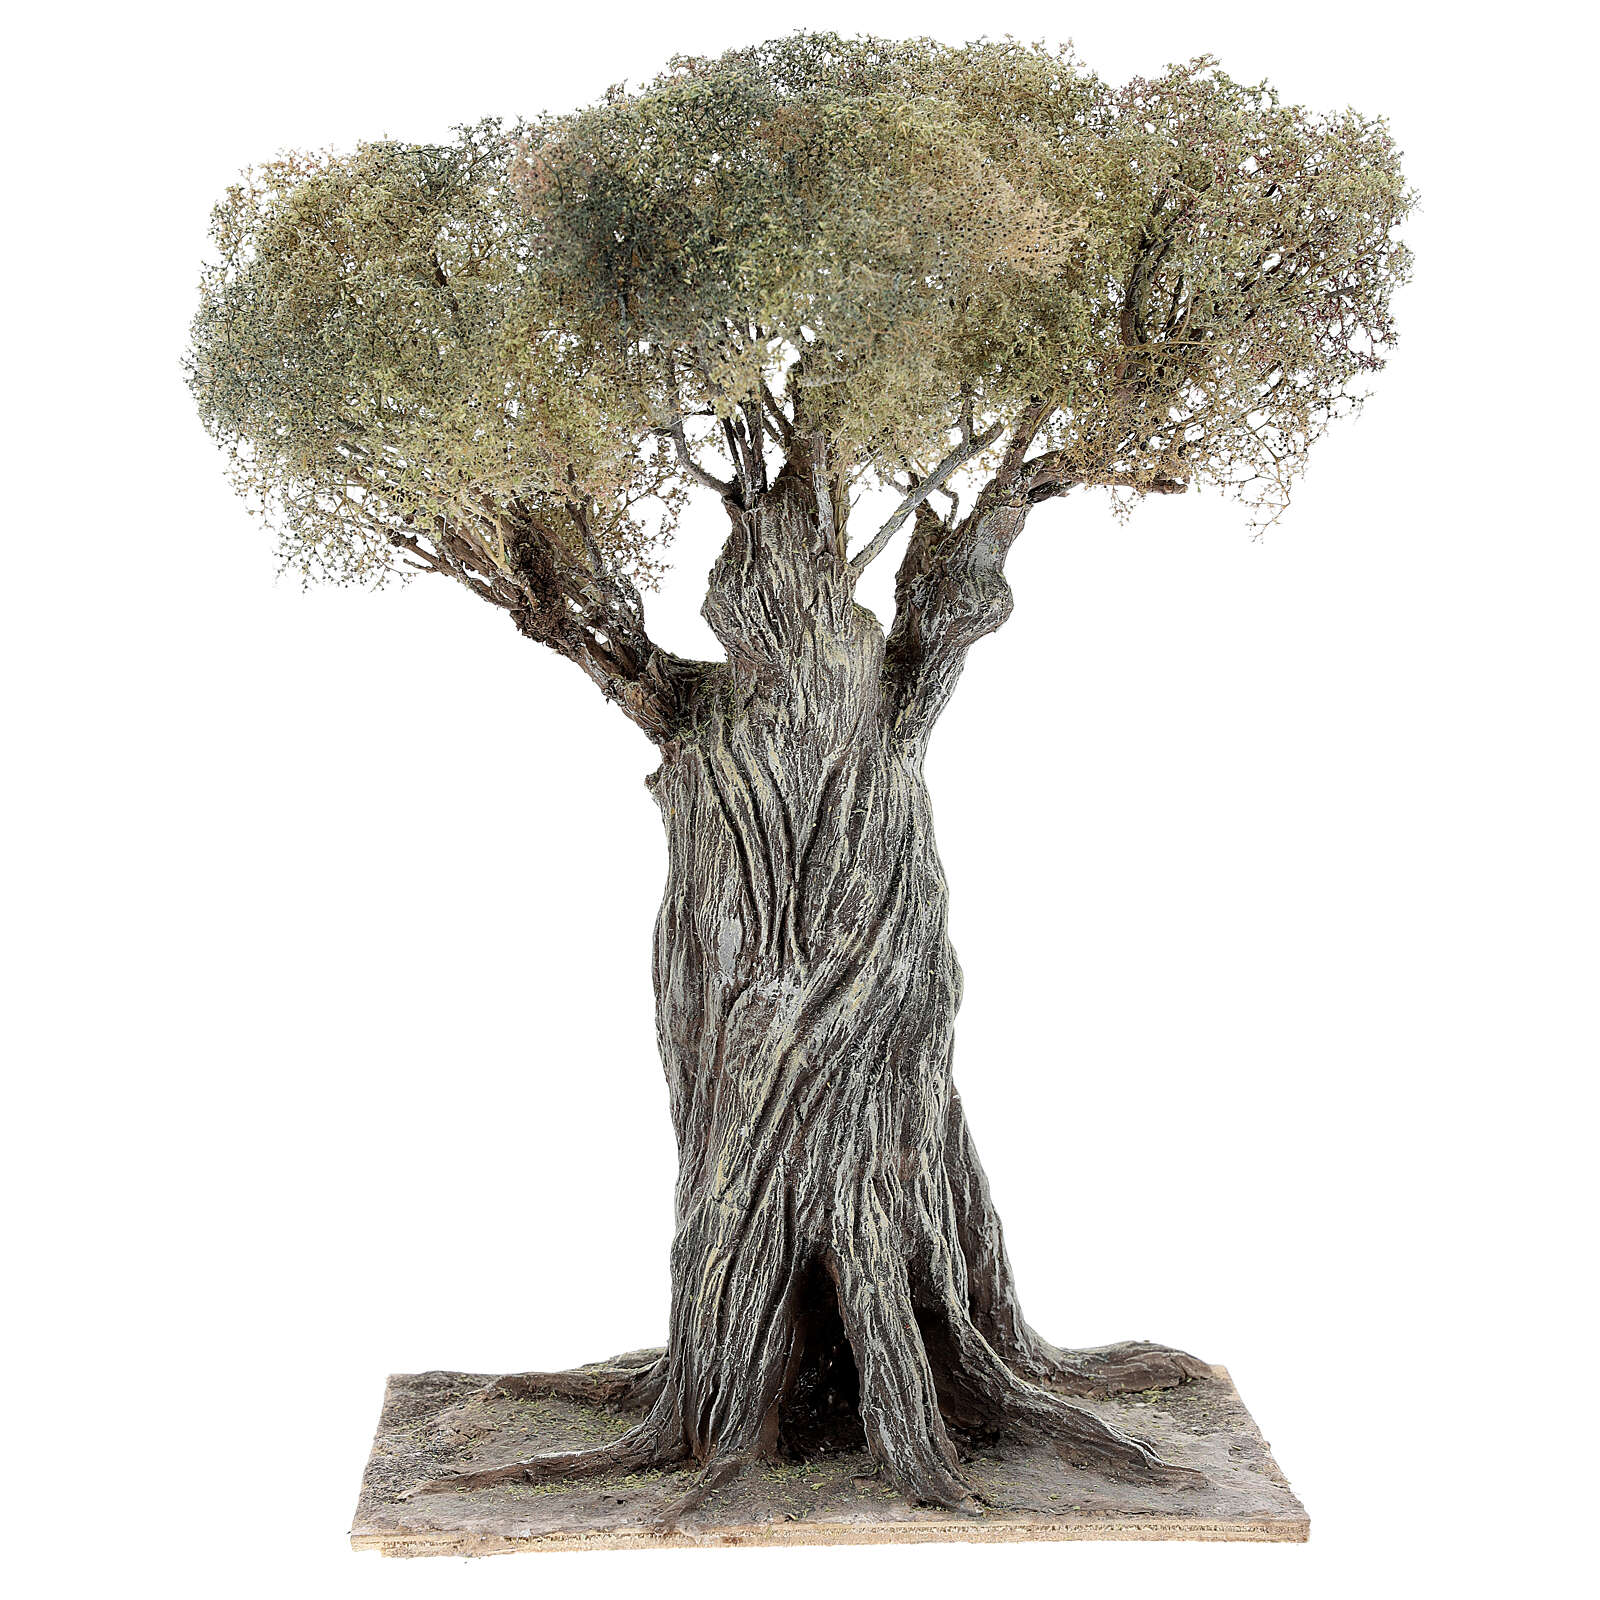 Olive tree for Neapolitan Nativity scene 30 cm in papier-mâché and wood 4